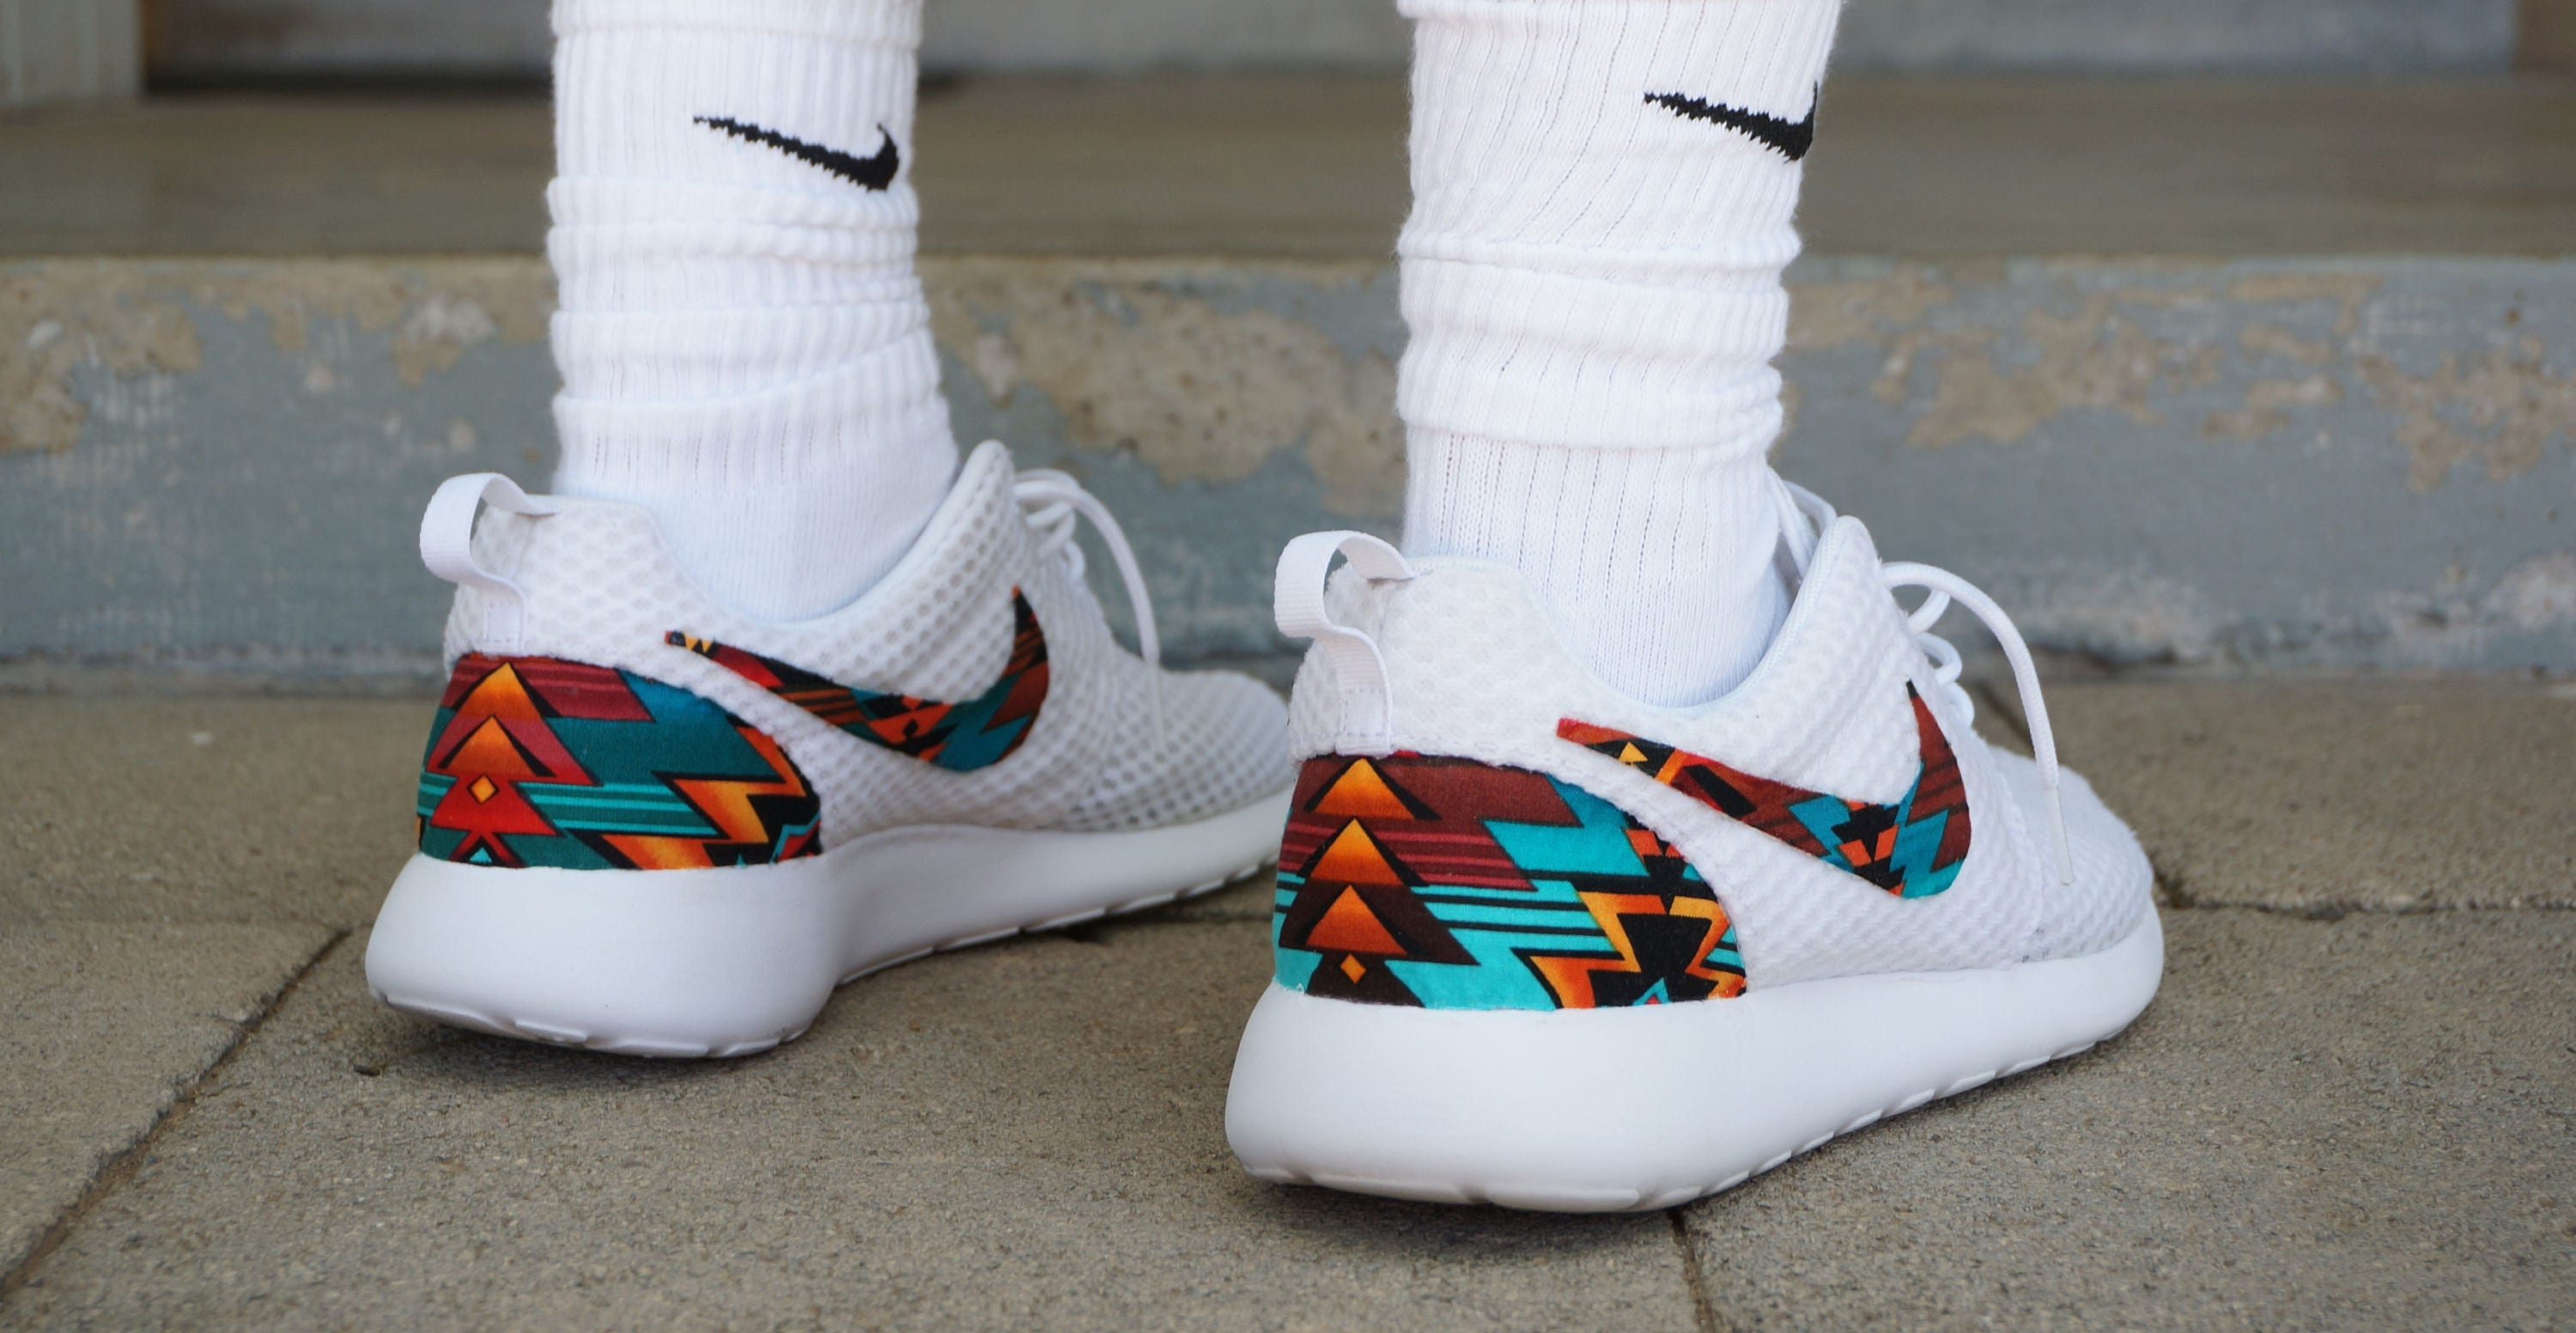 super popular e7f2b 85c3e New Nike Roshe Run Custom Turquoise Orange Black White   Etsy